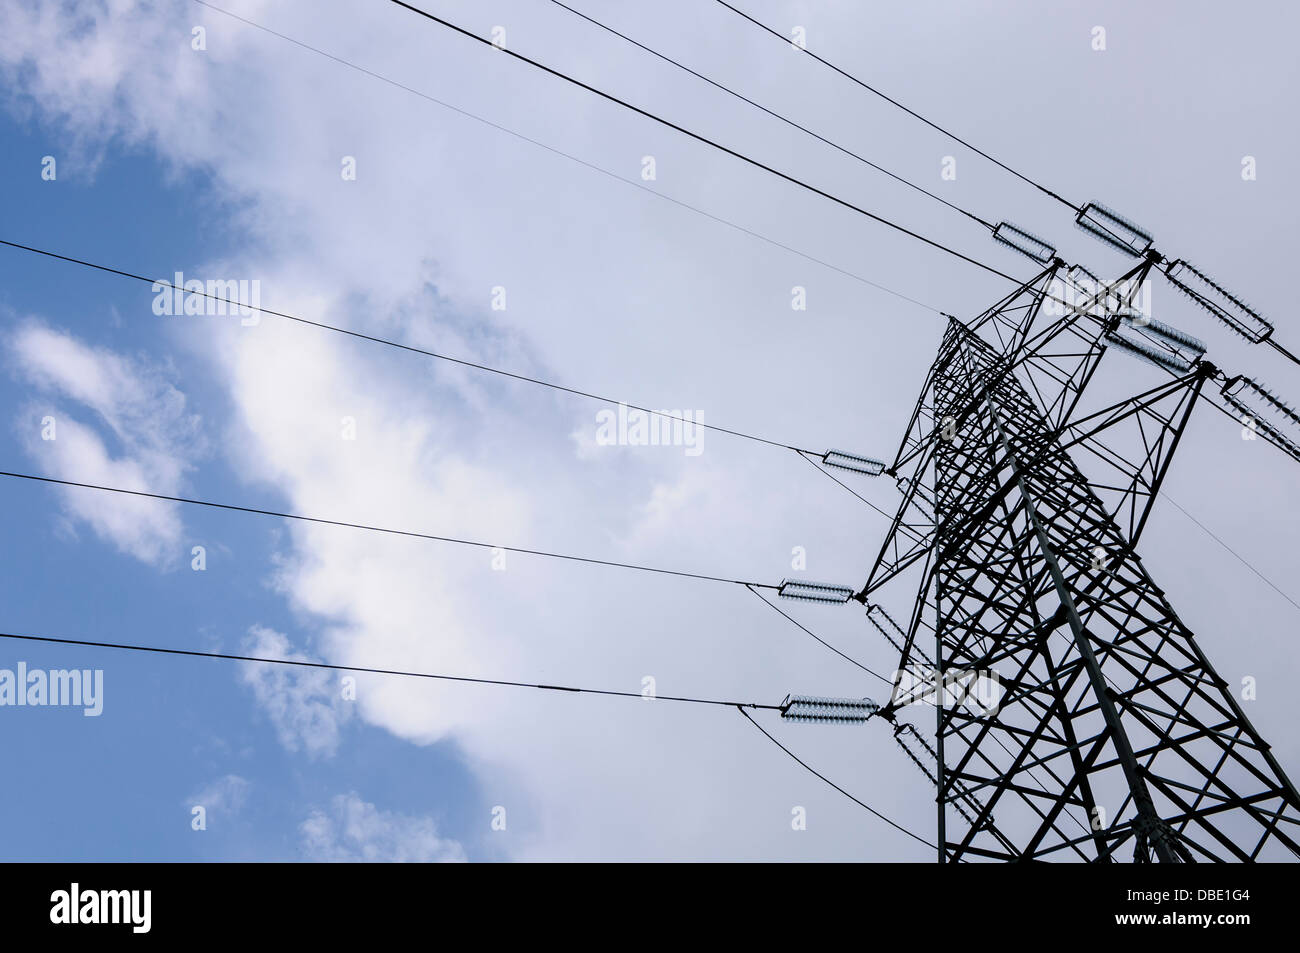 High voltage power tower and cables used for distributing electricity - Stock Image